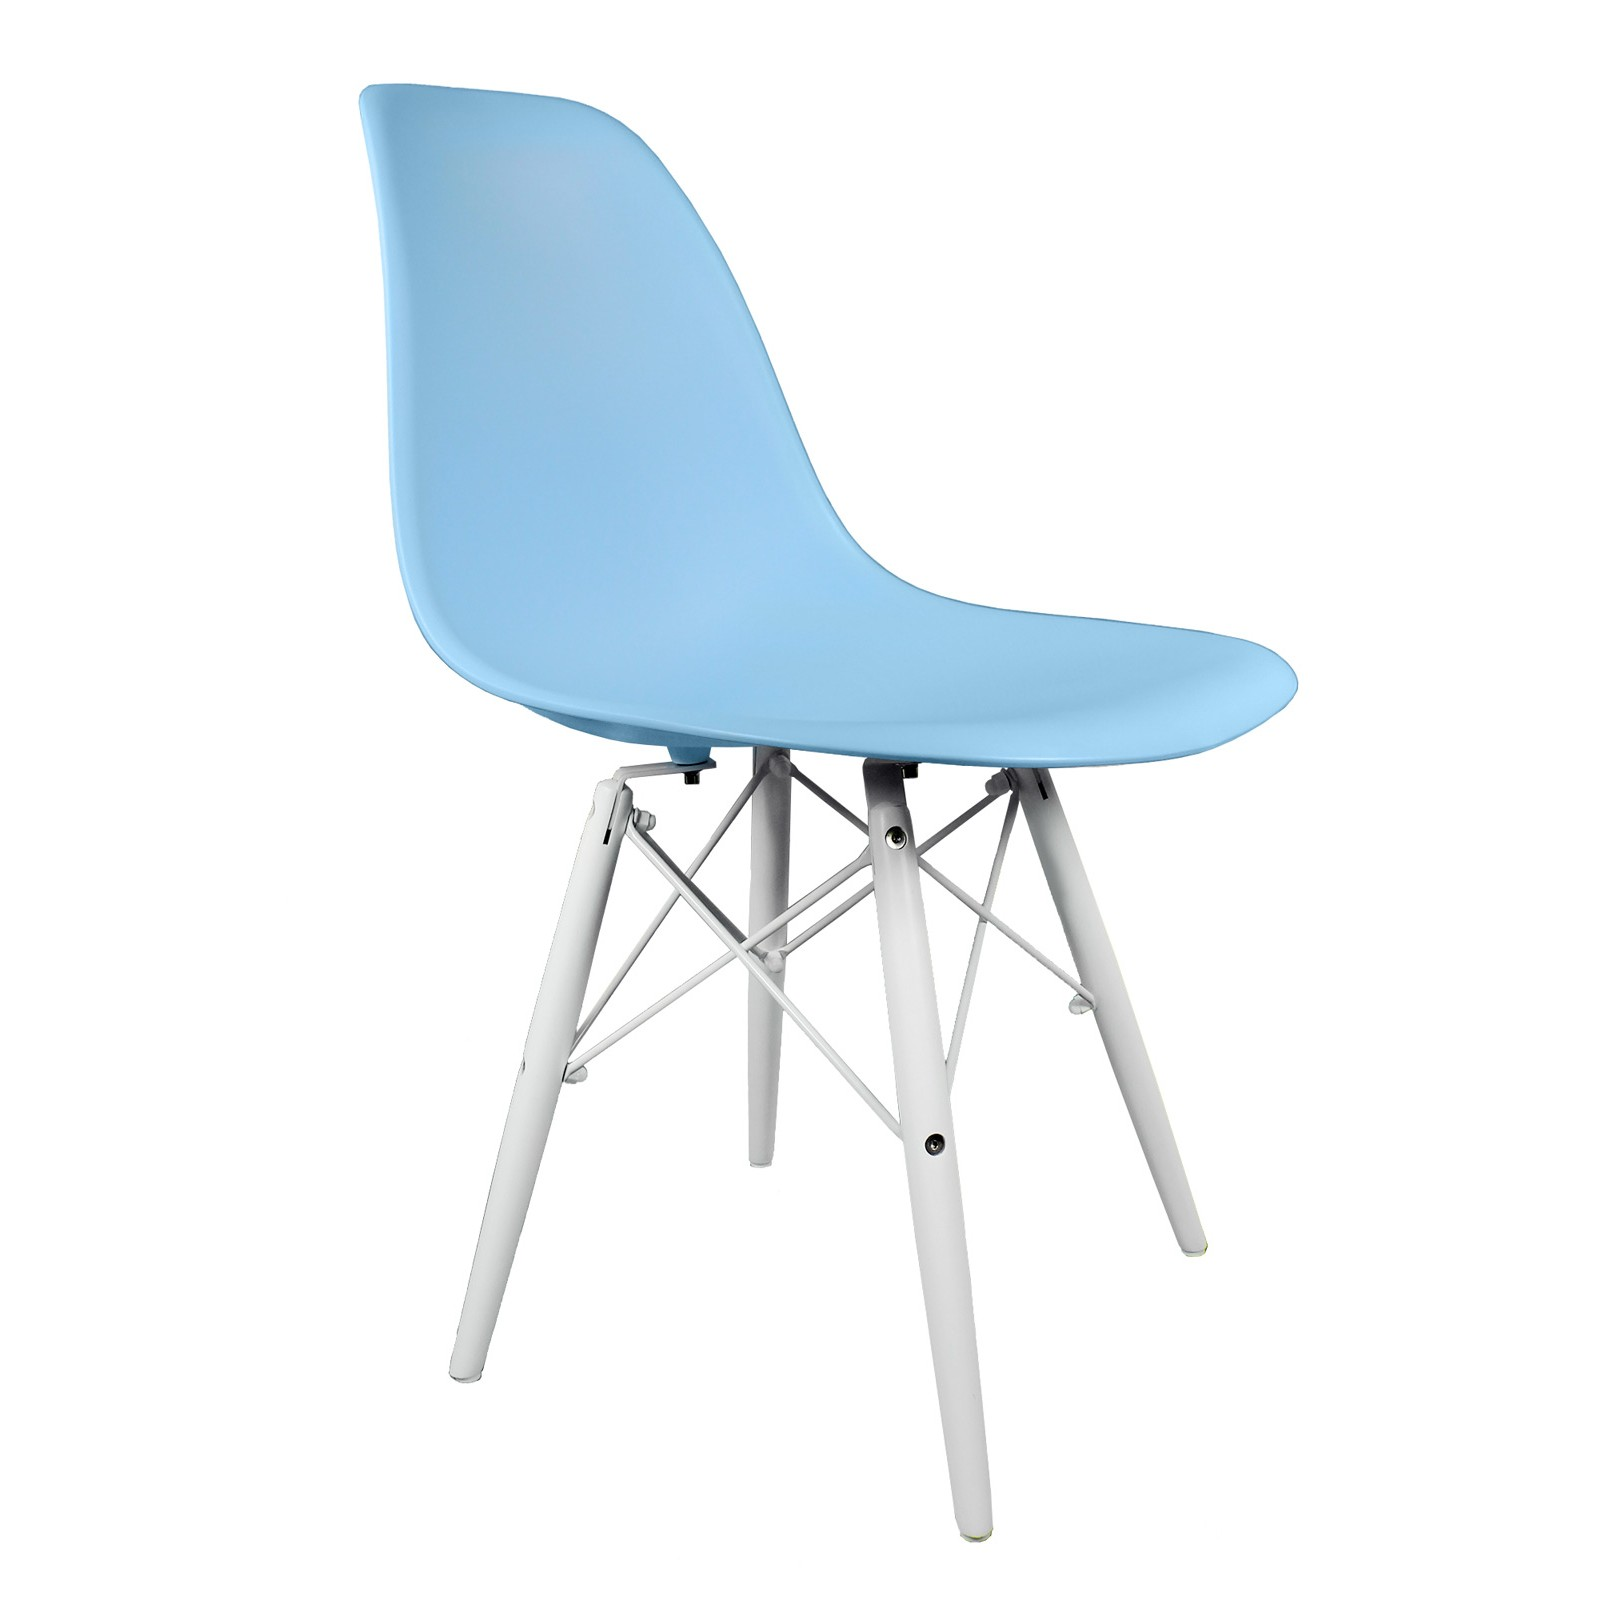 Tremendous Blue Eames Style Dsw Molded Plastic Dining Shell Chair With Ocoug Best Dining Table And Chair Ideas Images Ocougorg